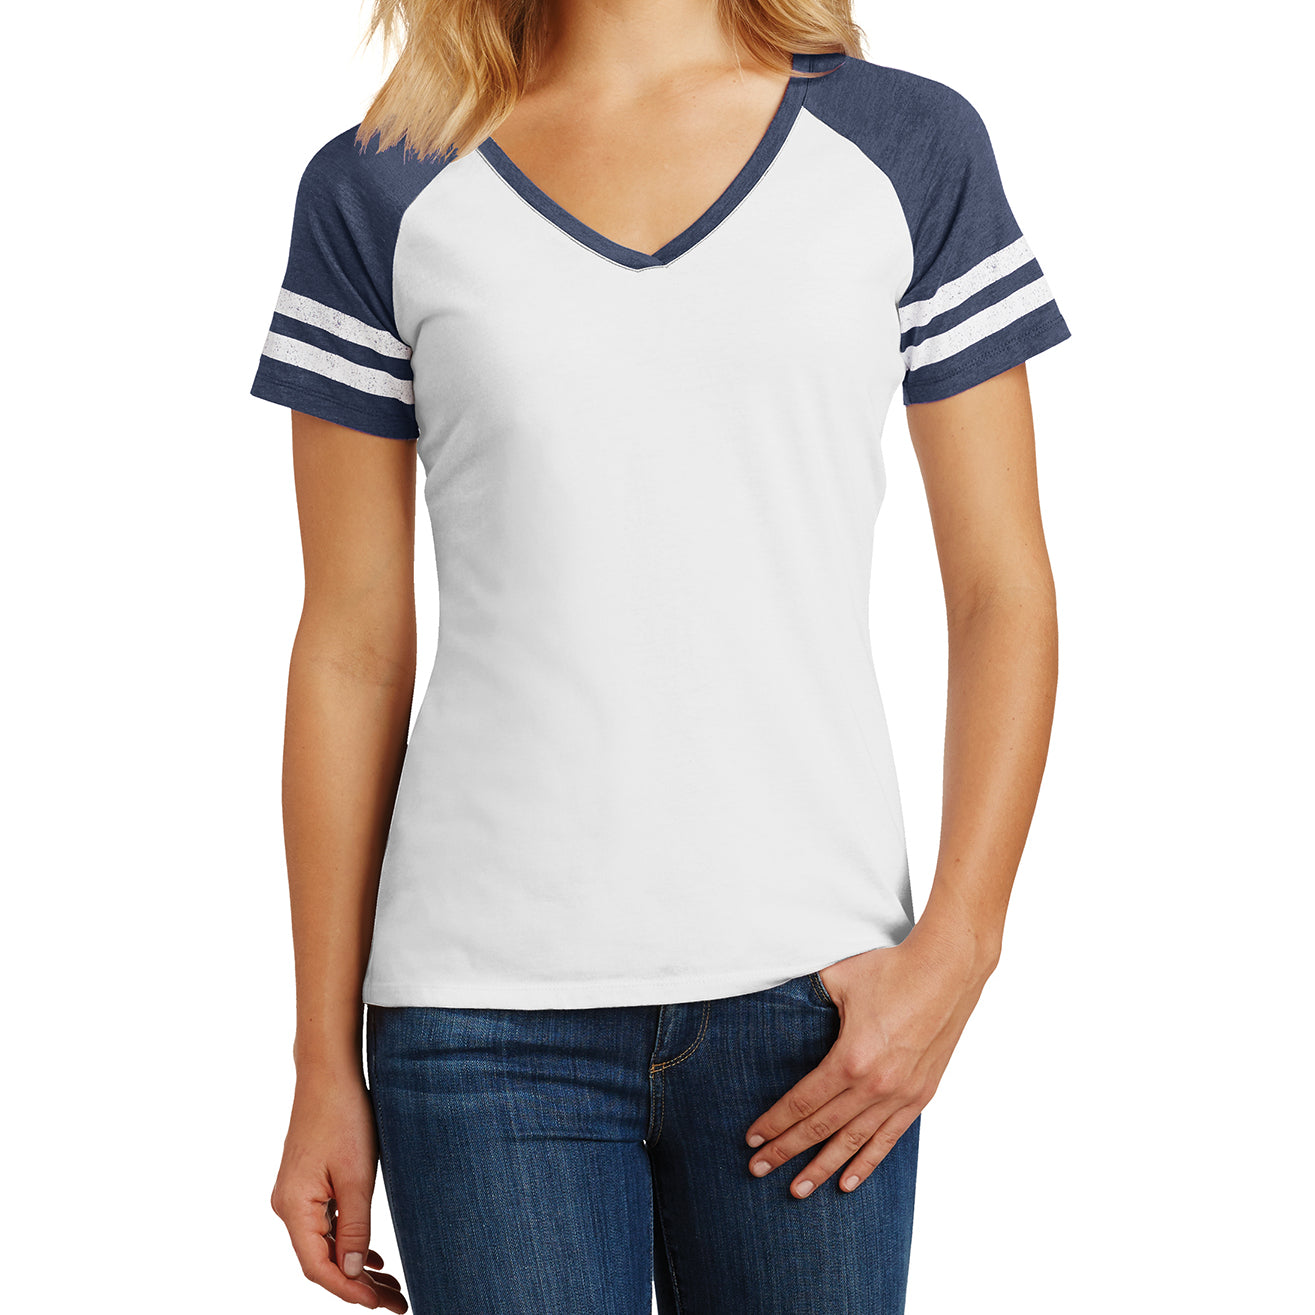 Womens Game V-Neck Tee - White/Heathered True Navy - Front